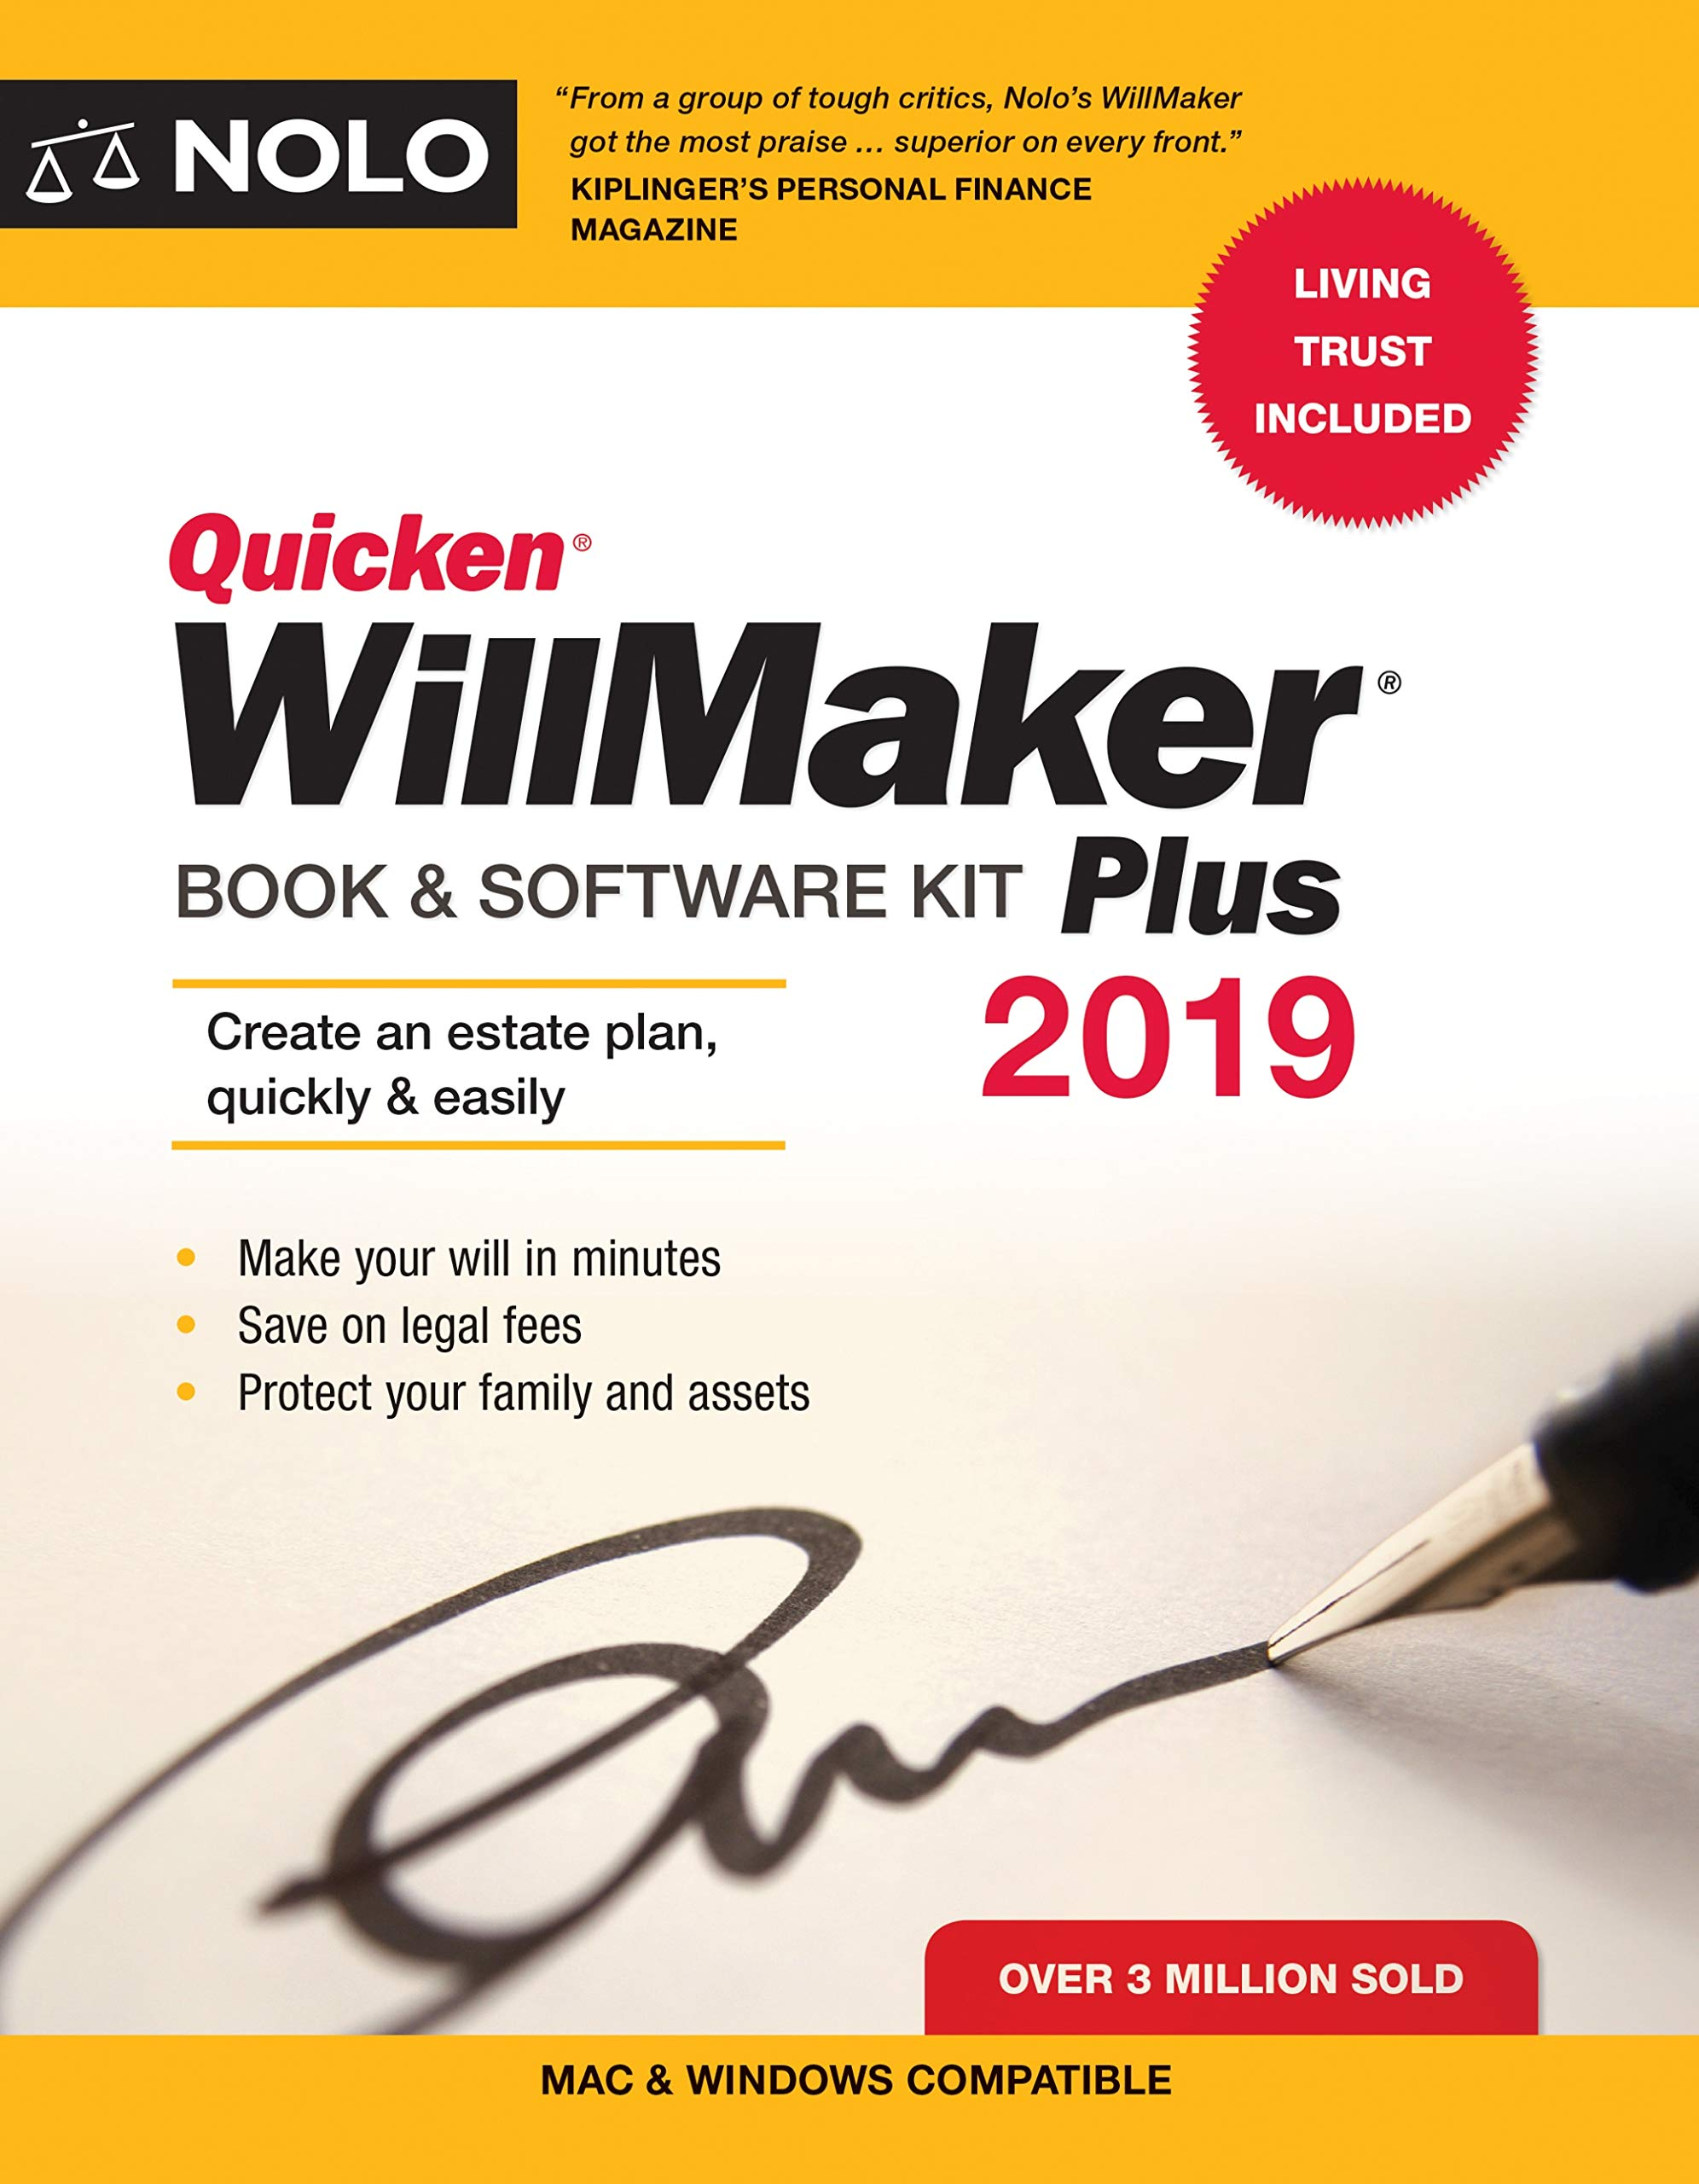 Quicken Willmaker Plus 2019 Edition: Book & Software Kit by NOLO